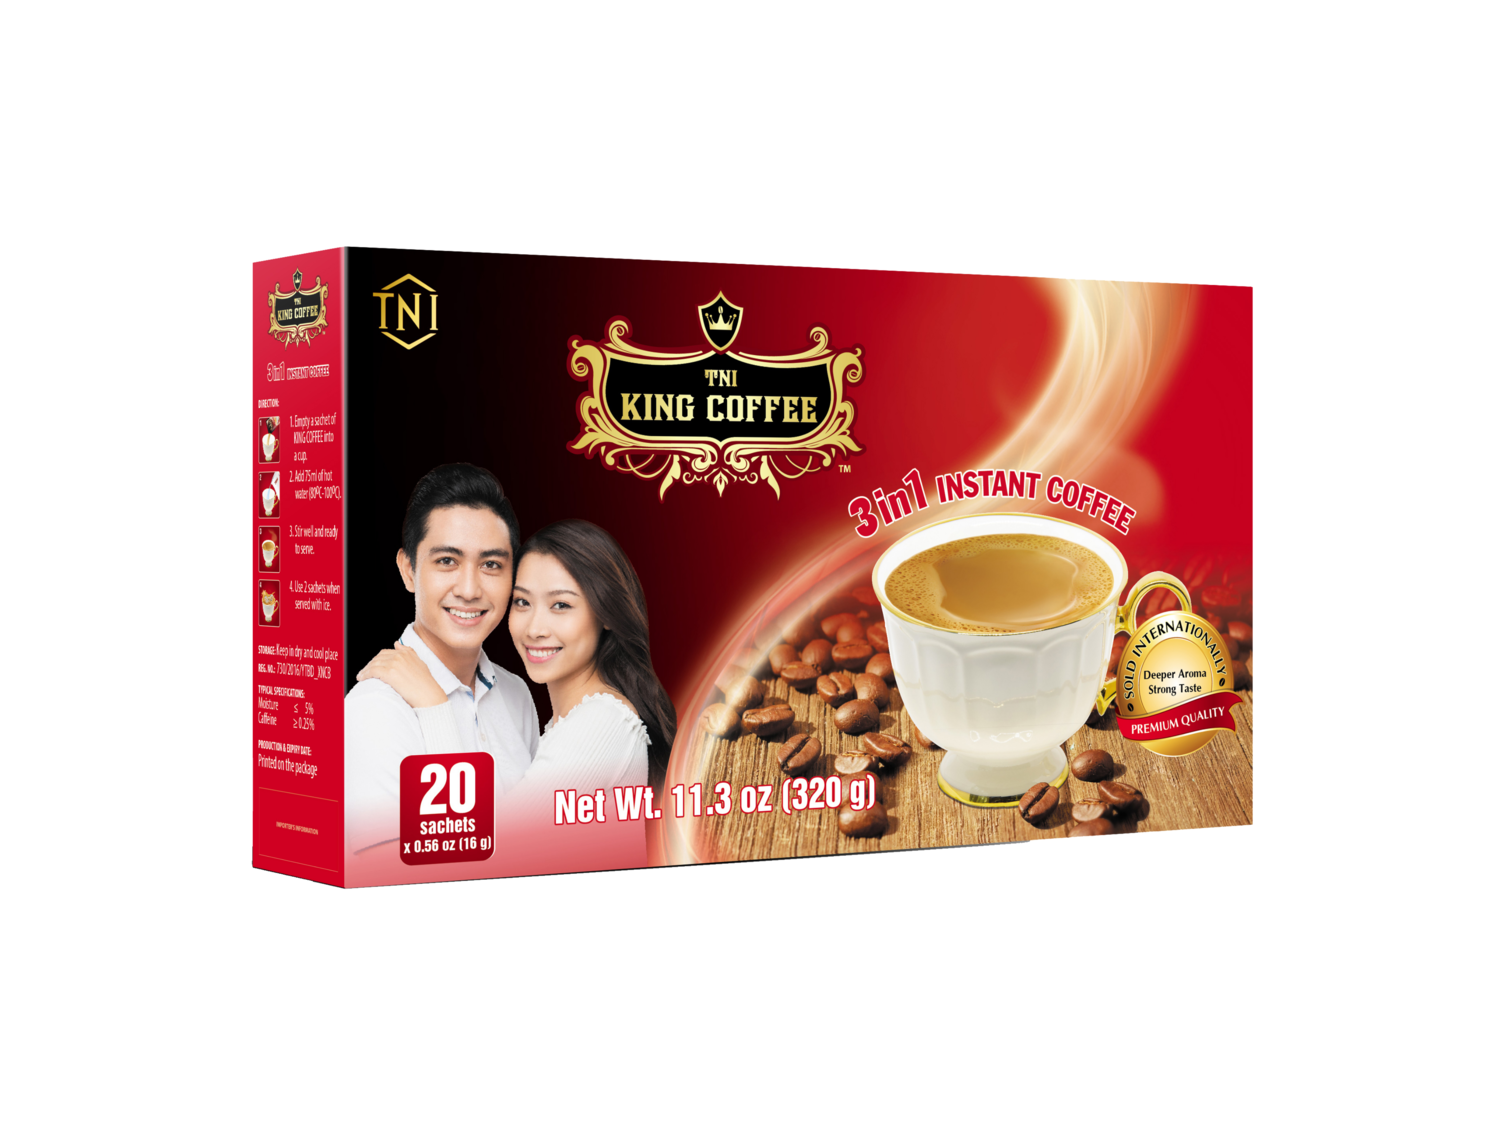 TNI King Coffee 3-in-1 Instant Coffee by 20